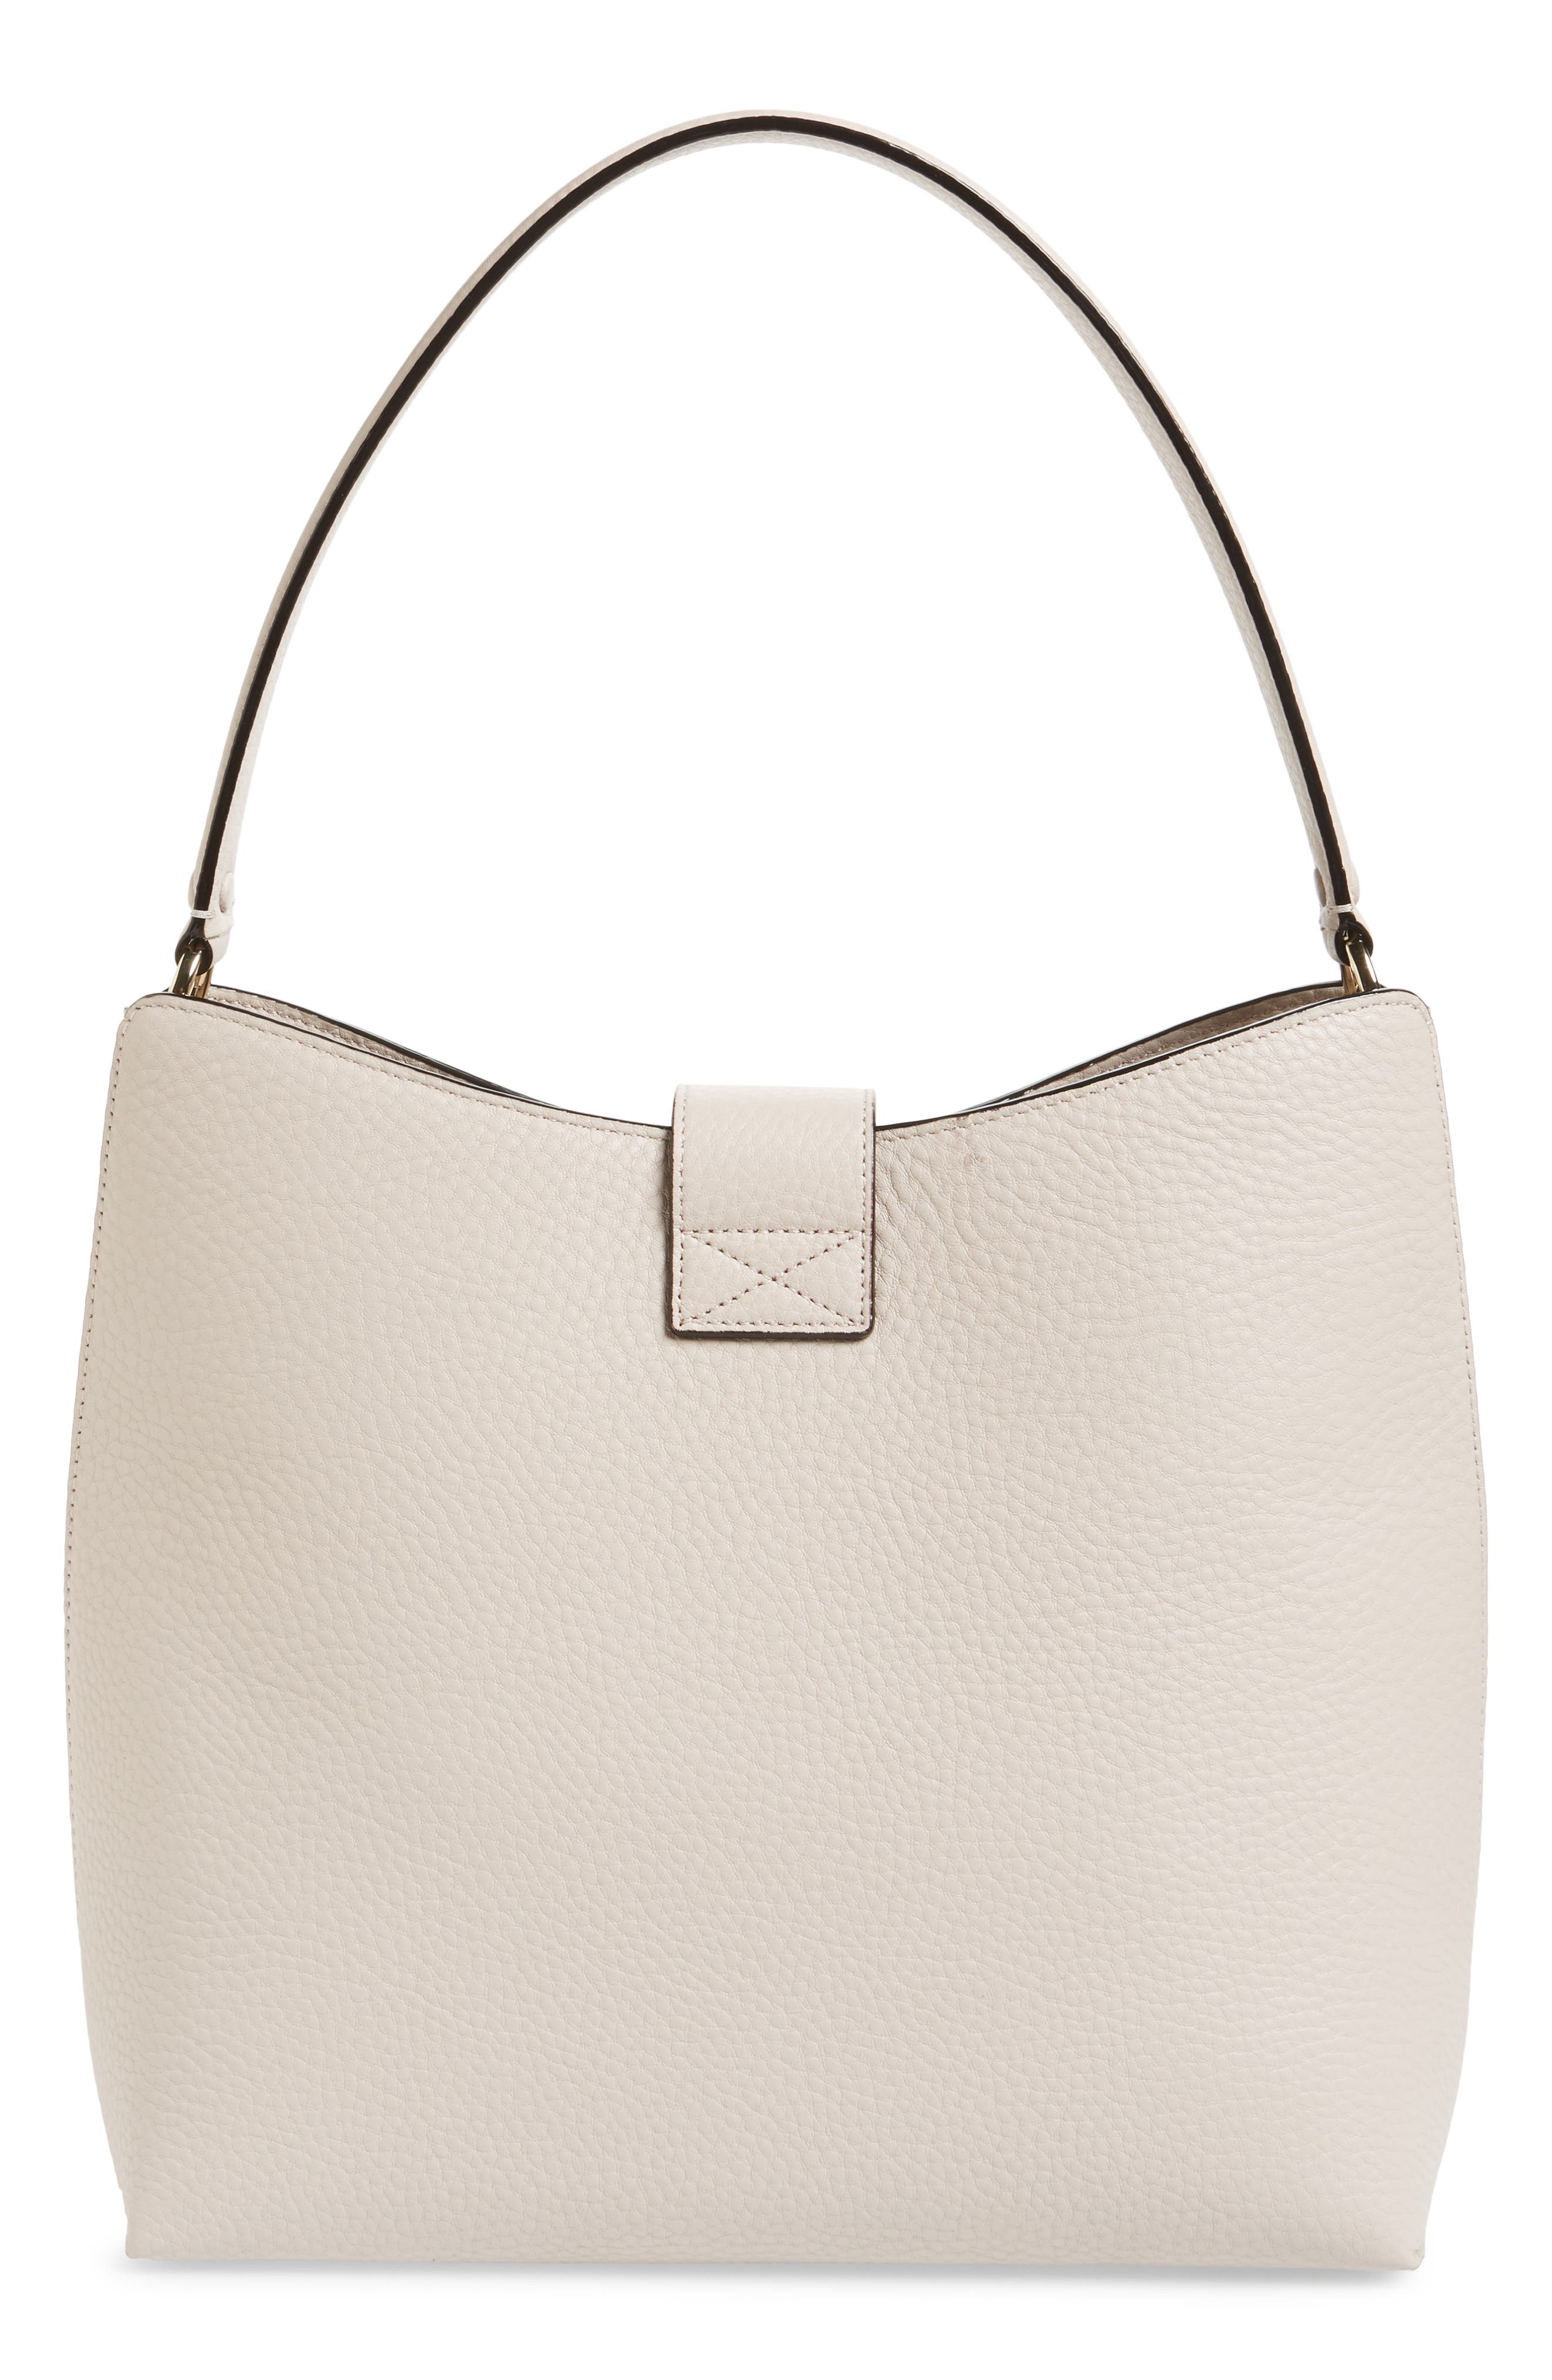 carlyle street – marea leather hobo,                             Alternate thumbnail 10, color,